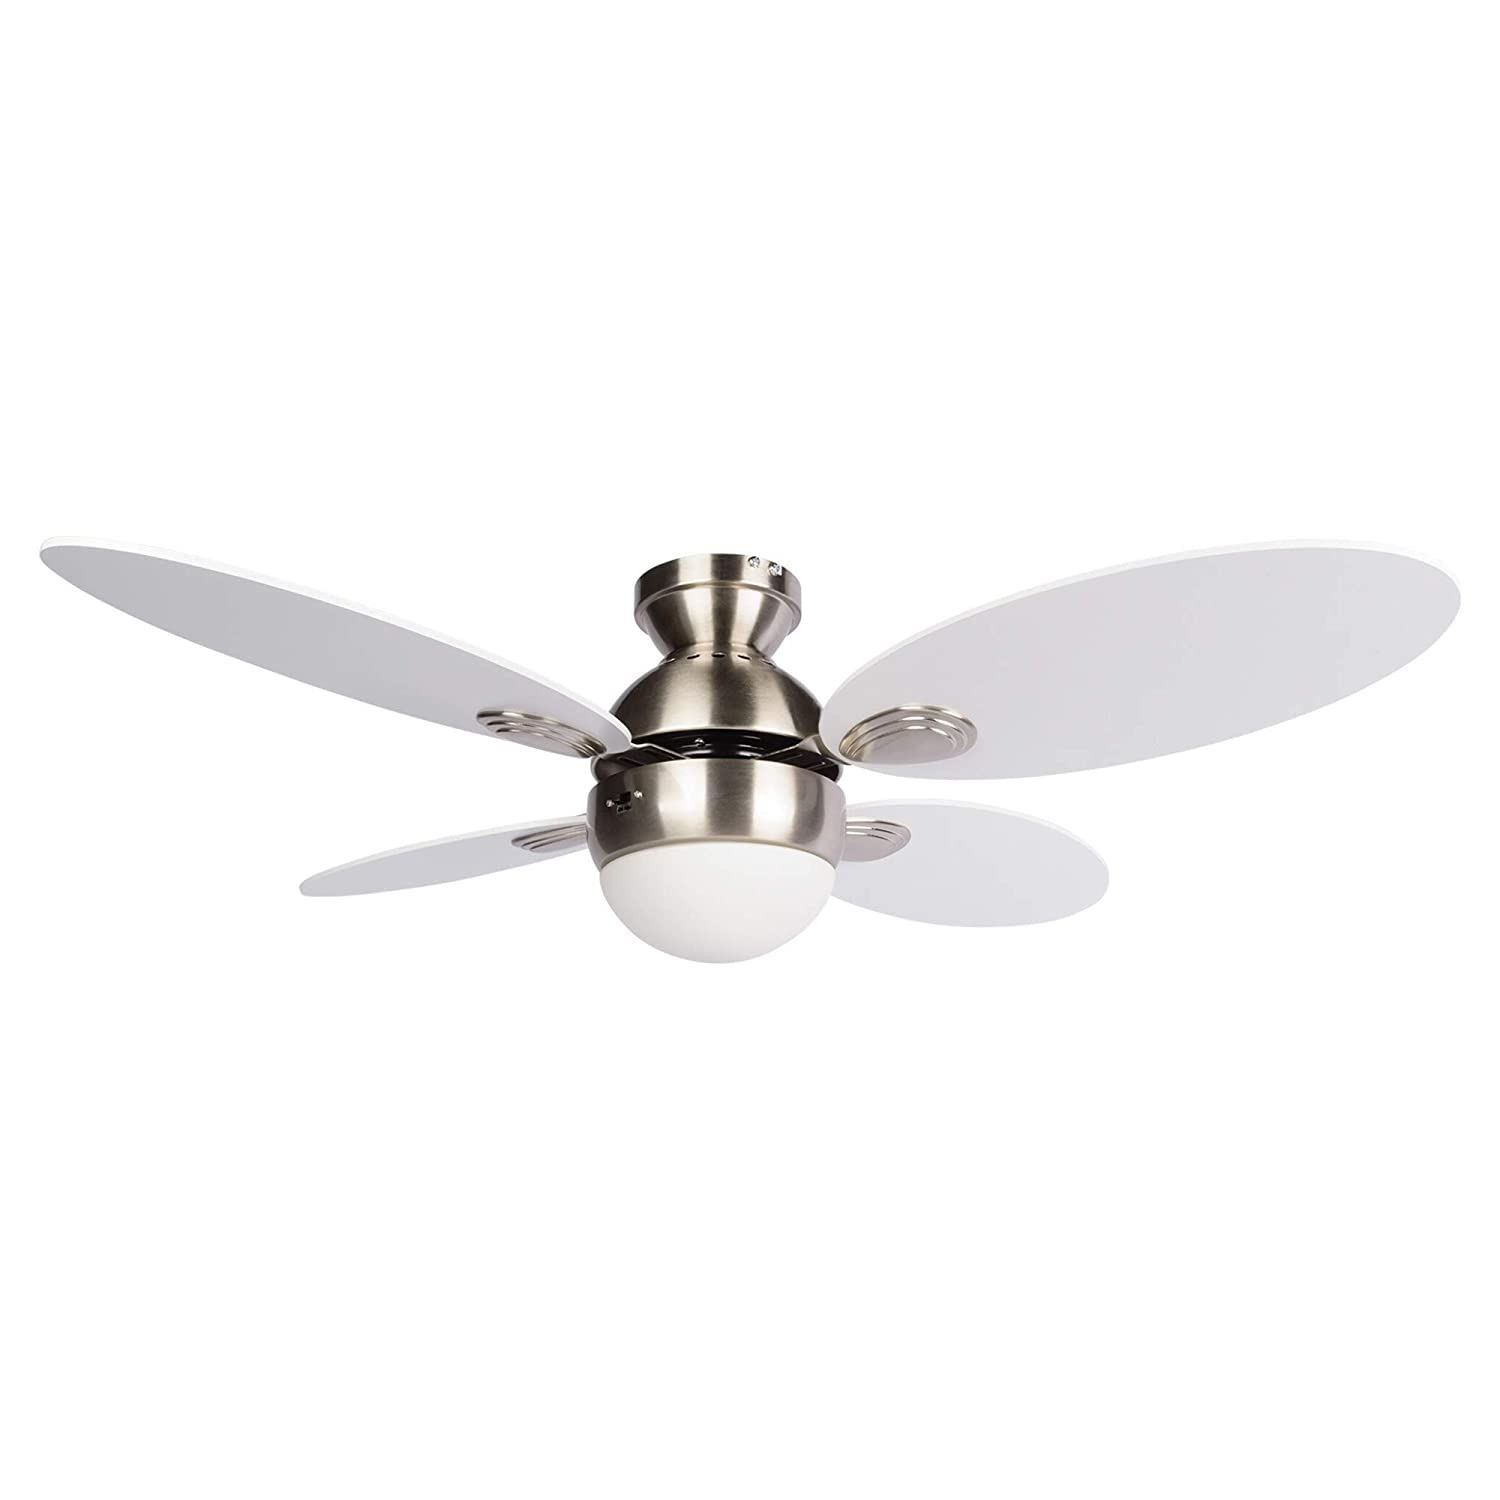 NOMA Scandinavian White Ceiling Fan with Light 42-Inch Dimmable Flush Mount Dual Mount Ceiling Fan with Remote White Blades, Brushed Nickel Finish